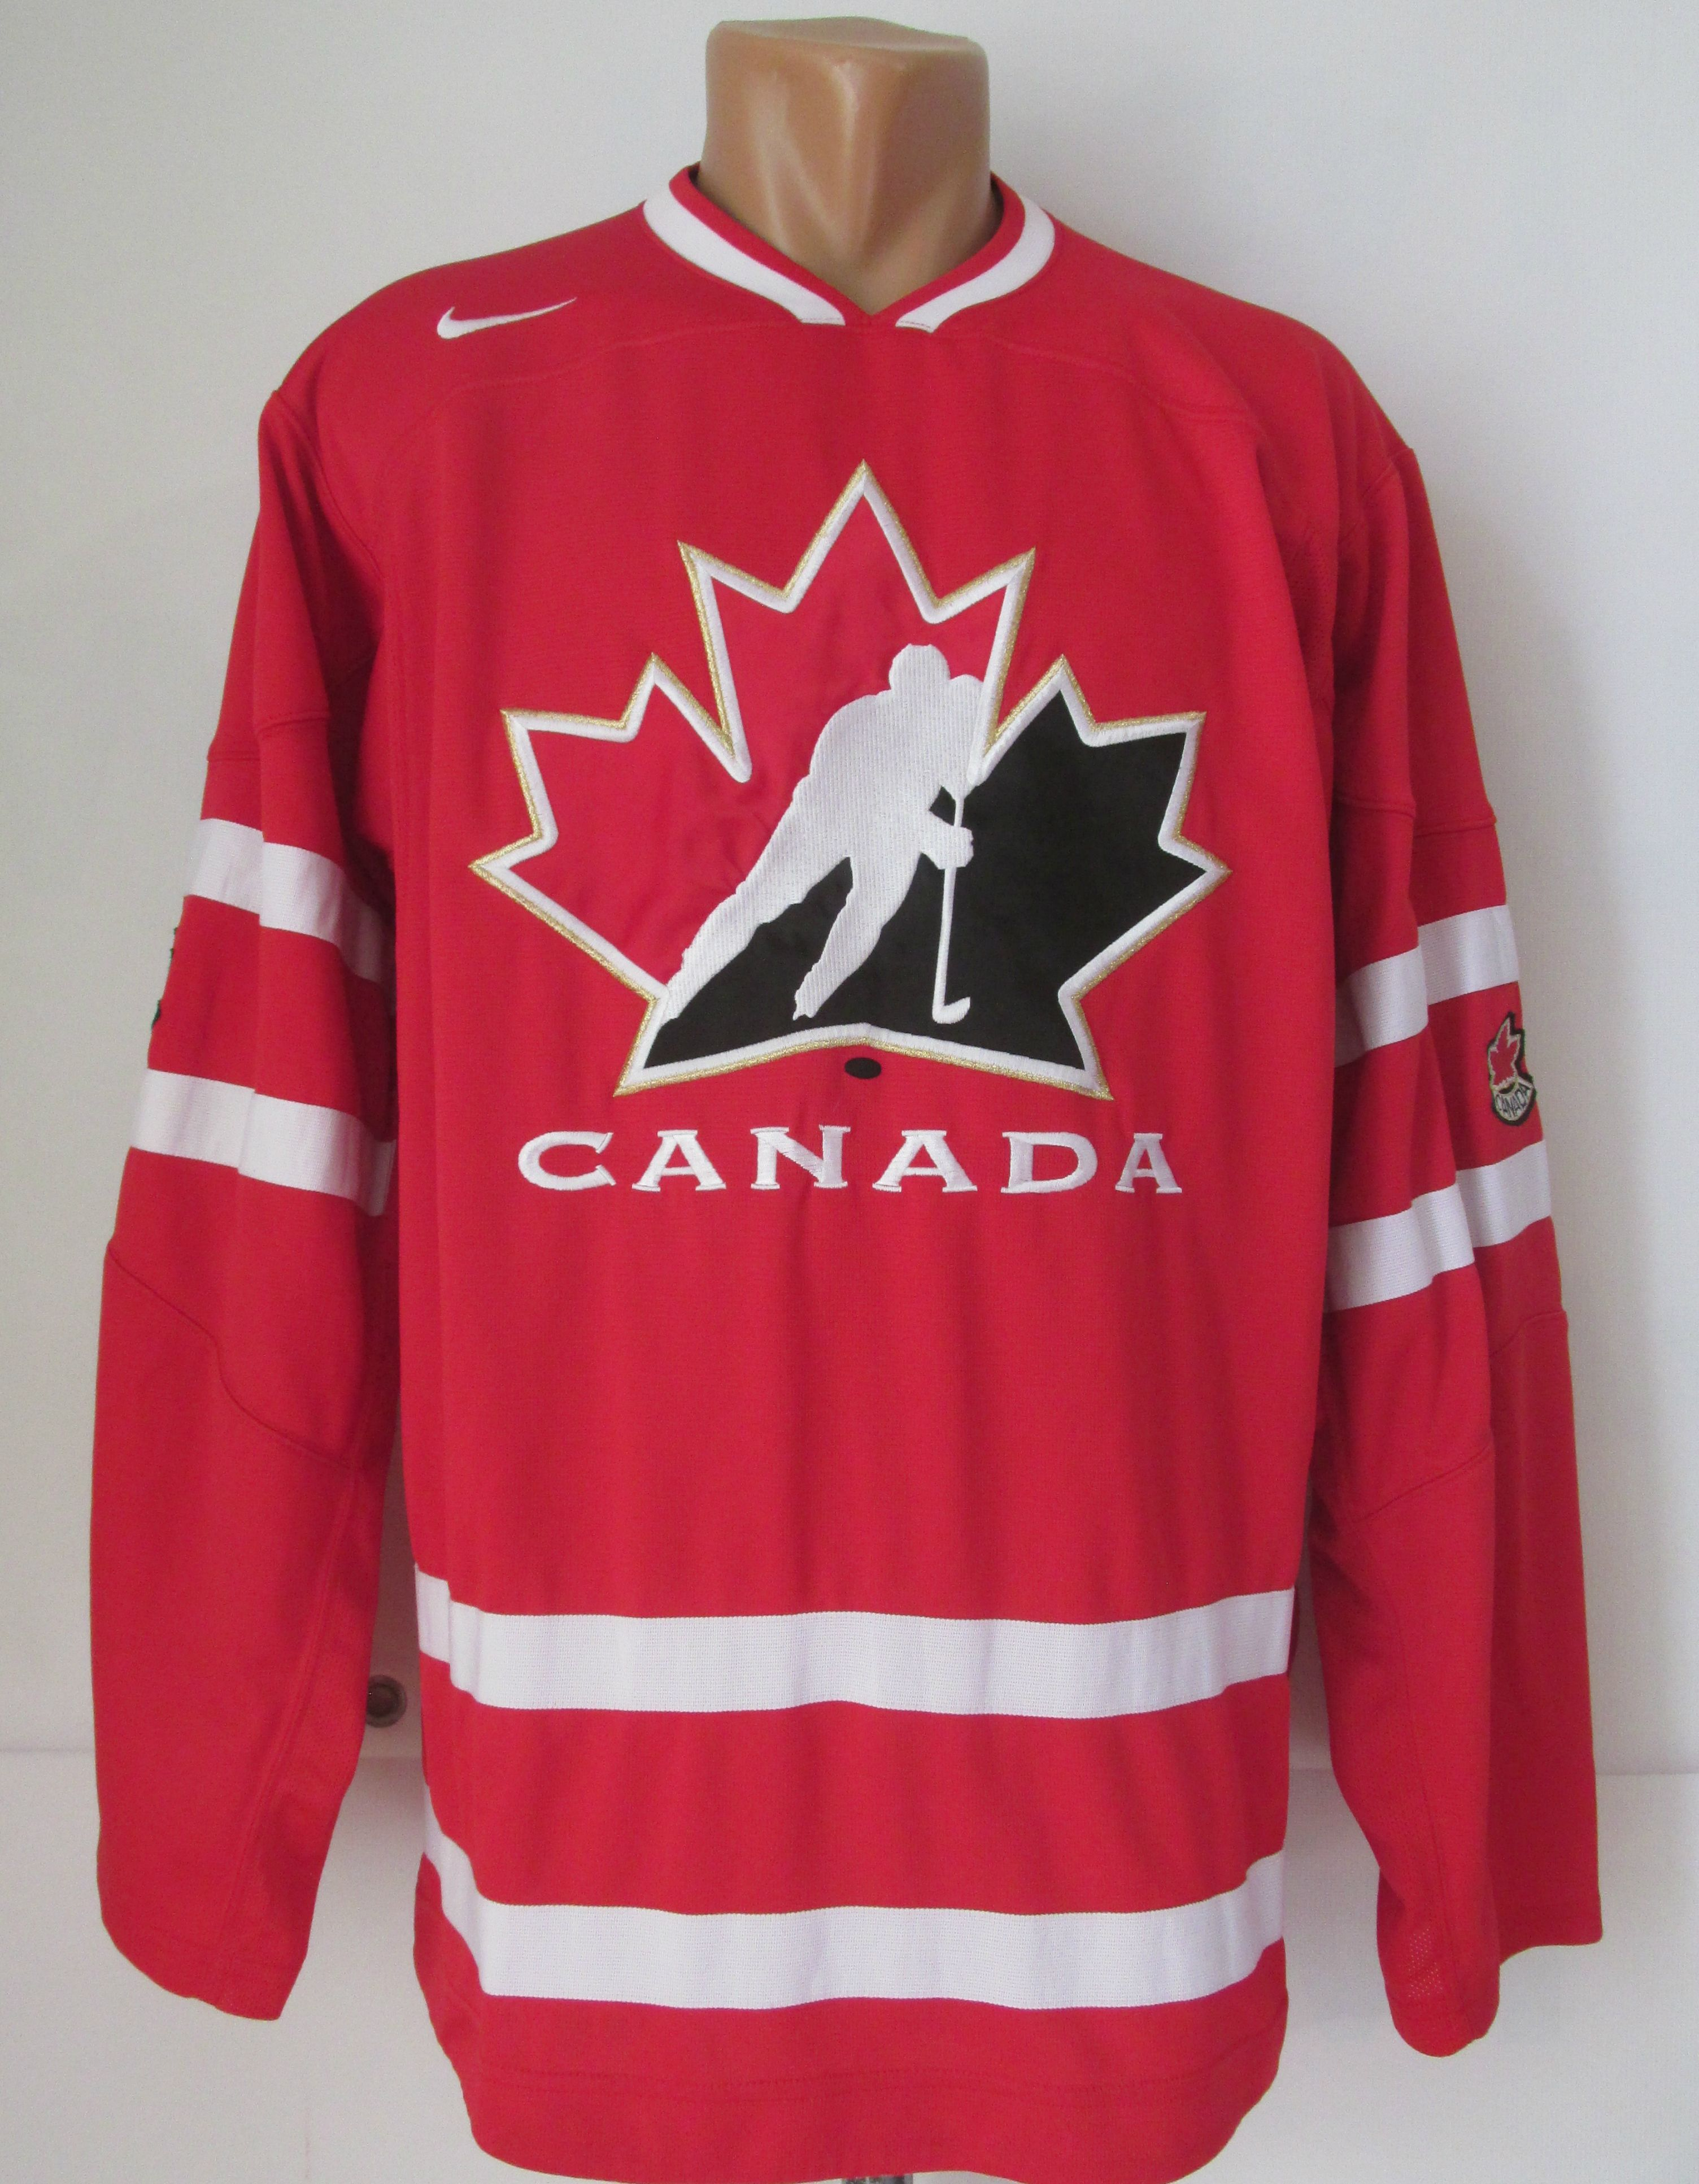 Canada 2008 2009 Ice Hockey Jersey By Nike Iihf Patchred Red Can Teamcanada Canada Teamcanada Nike Hockey Team Canada Team Canada Hockey Team Usa Hockey